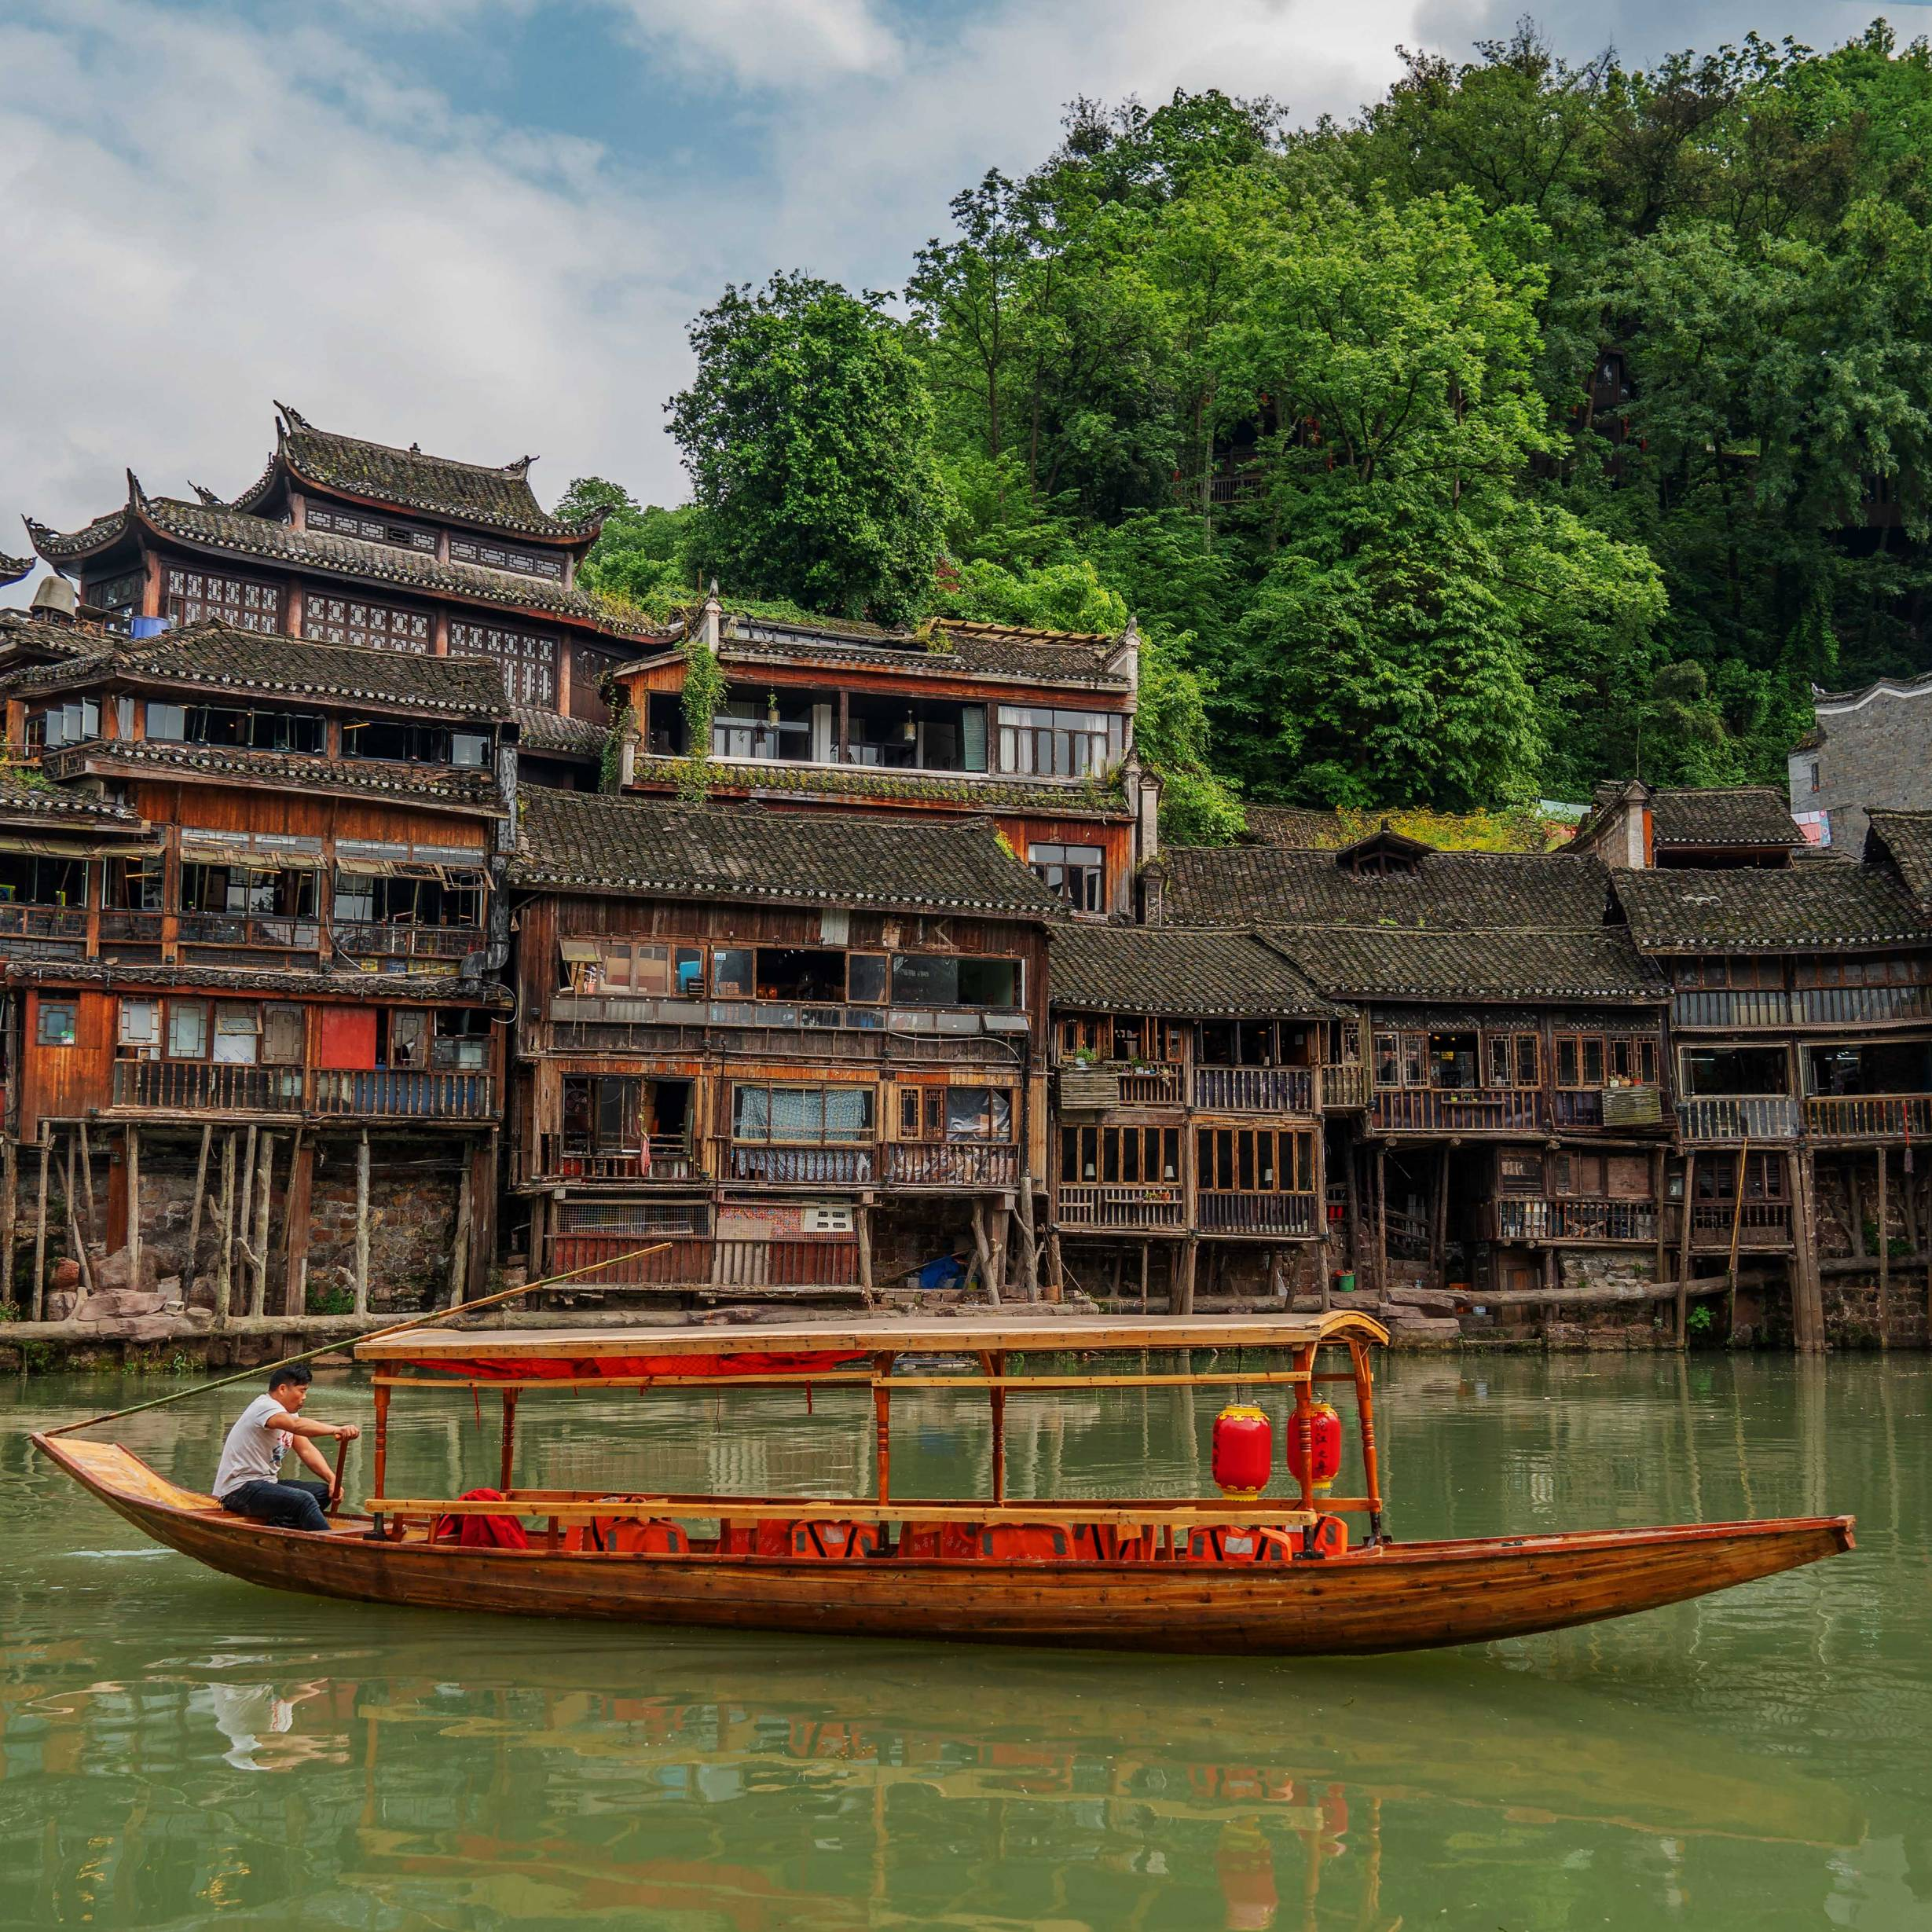 A Traditional Boat in Front of Old Houses in Fenghuang